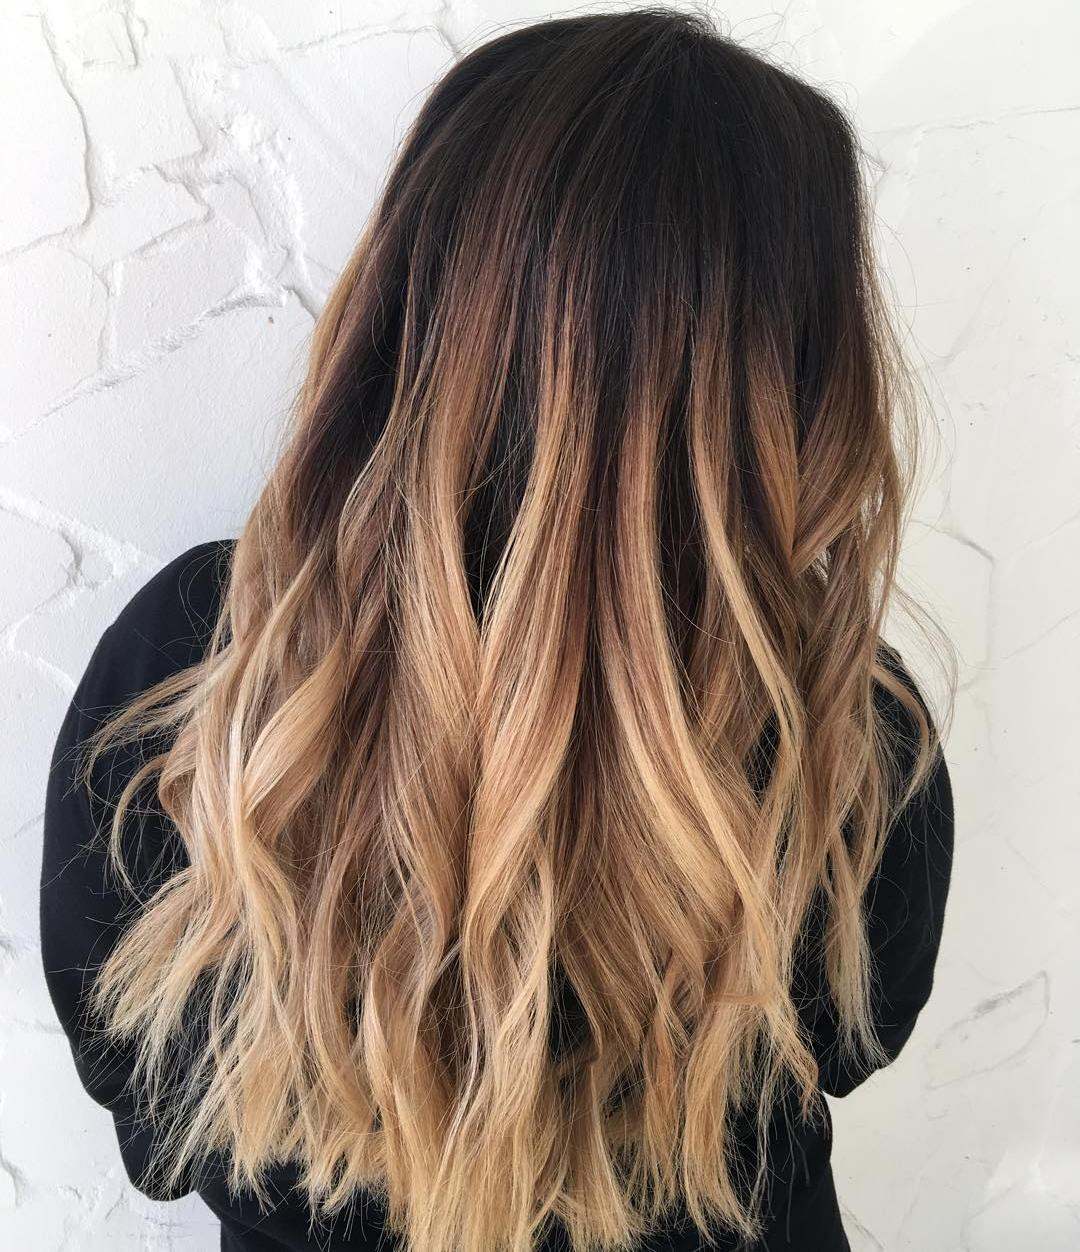 60 best ombre hair color ideas for blond brown red and black hair - Ombre braun blond ...